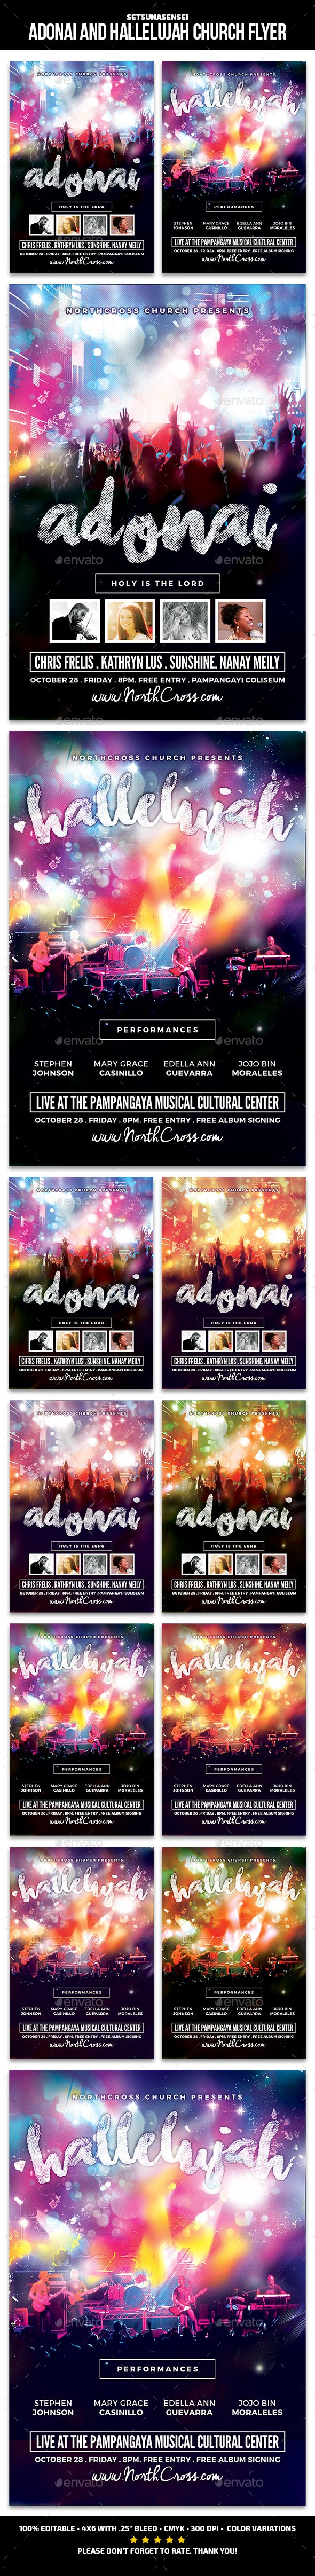 17 best images about church flyer logos models and adonai and hallelujah church flyer